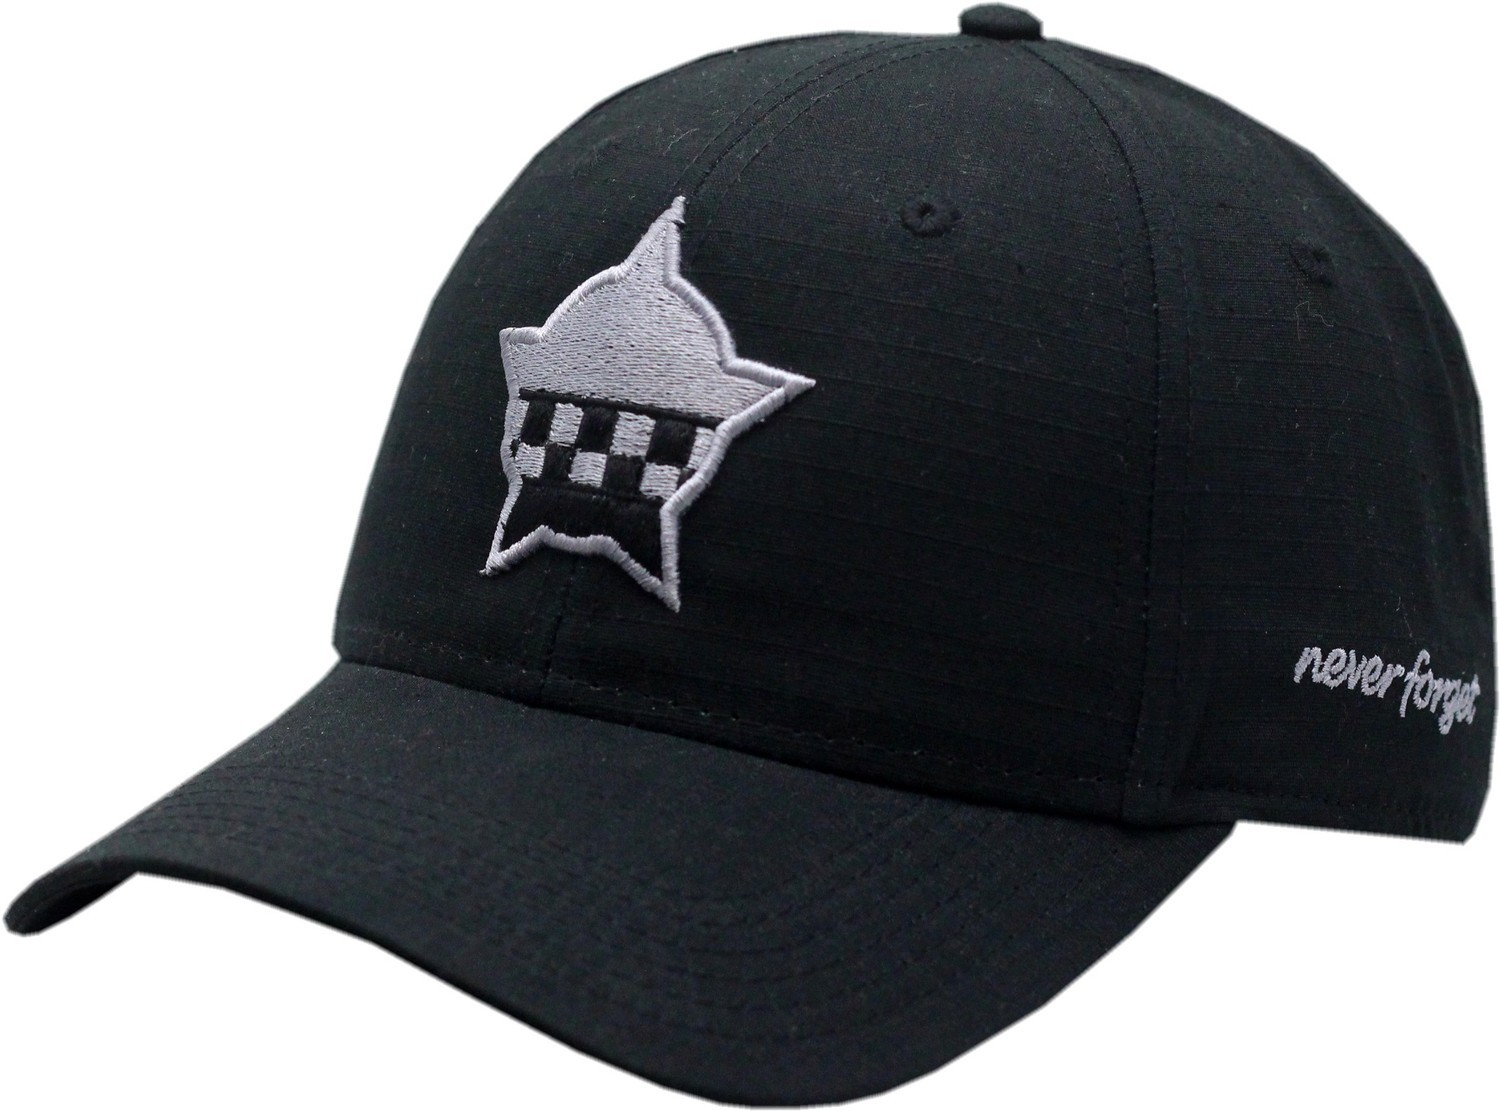 CPD Memorial Star Ripstop Adjustable Hat Subdued Black 19-1266